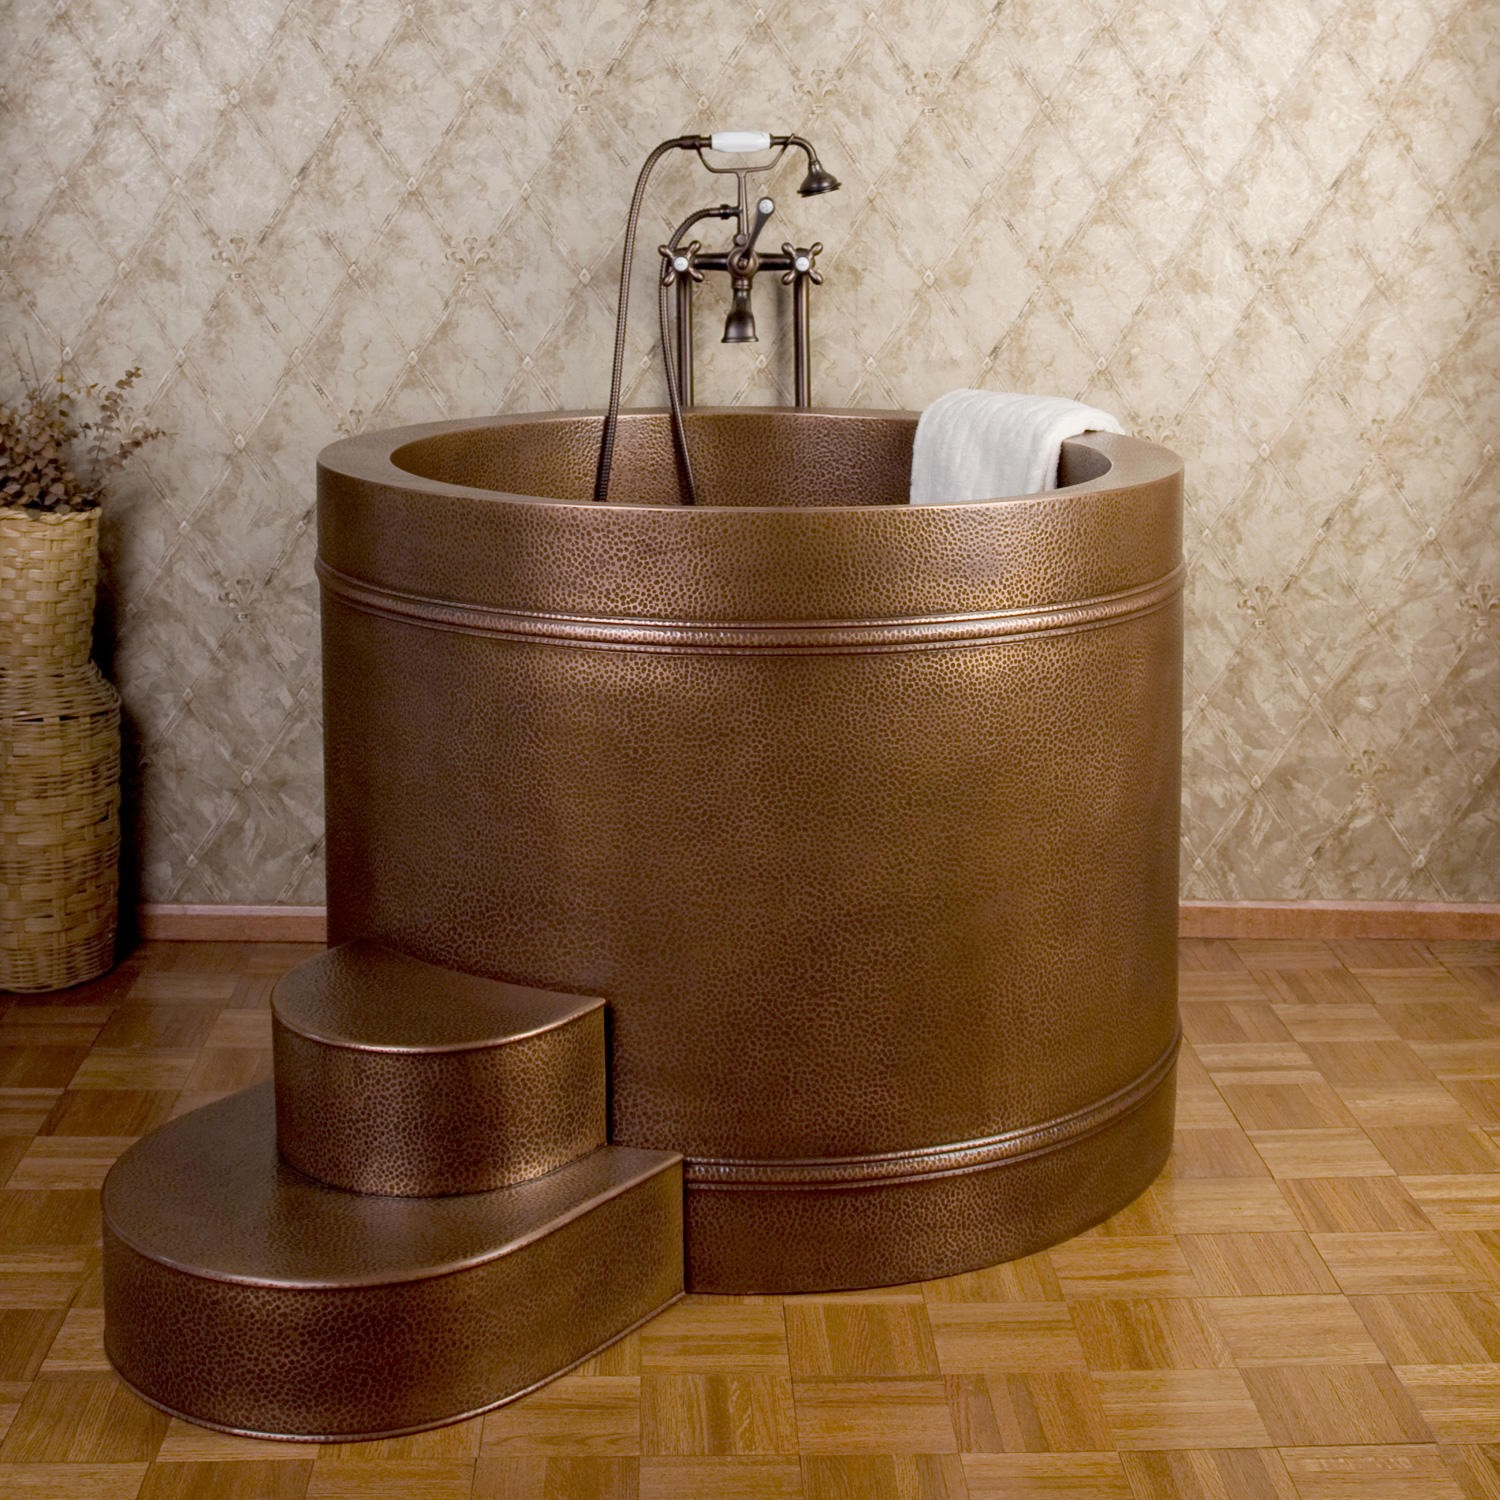 japanese soaking tub small in round shape plus wall motif and magnificent flooring for nice